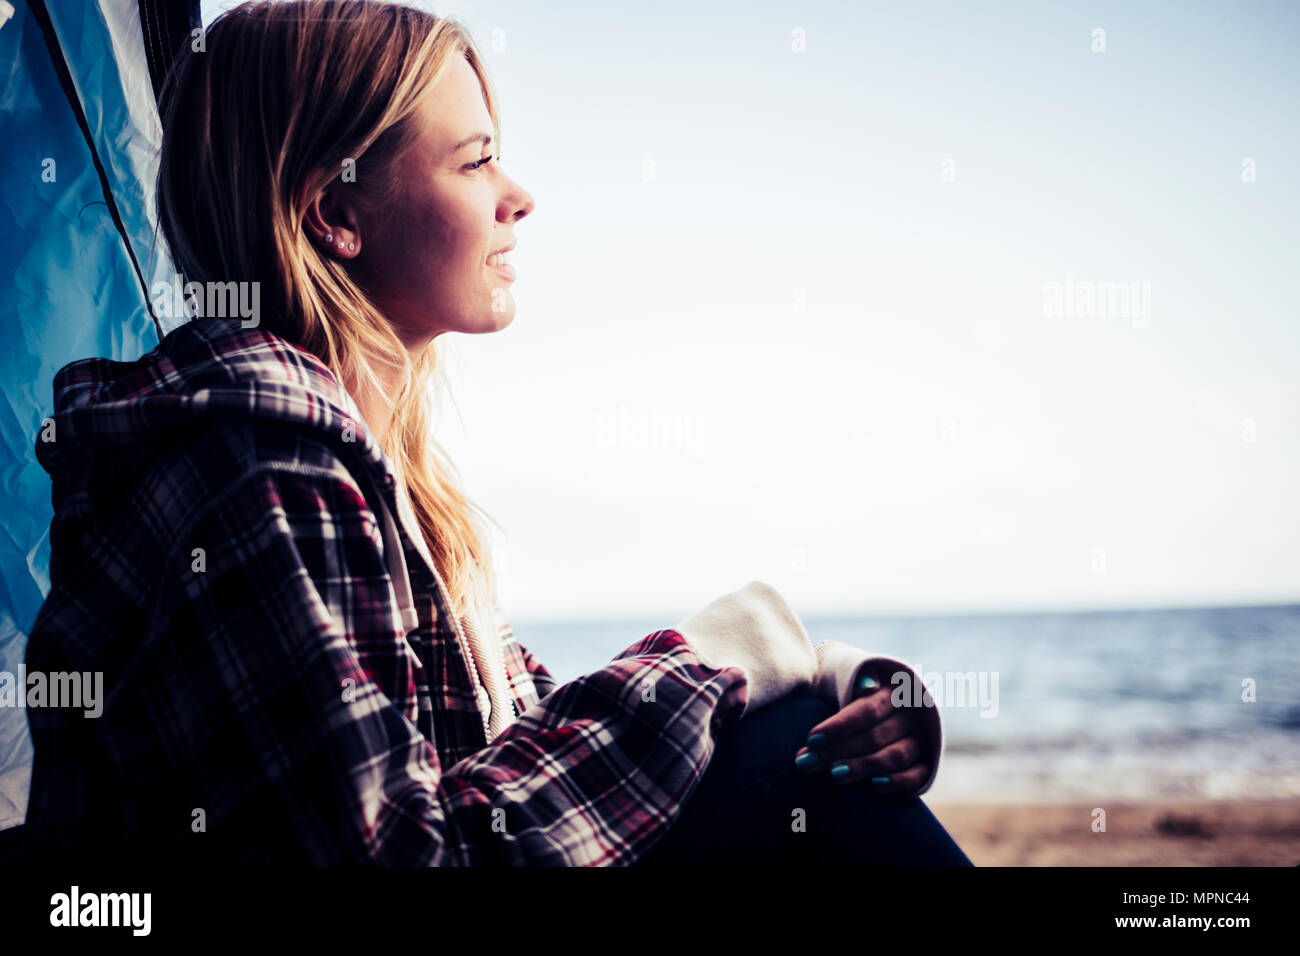 wanderlust for young beautiful blonde woman caucasian smiling at the ocean sit down of her tent placed on the beach. ocean and sea in the background - Stock Image